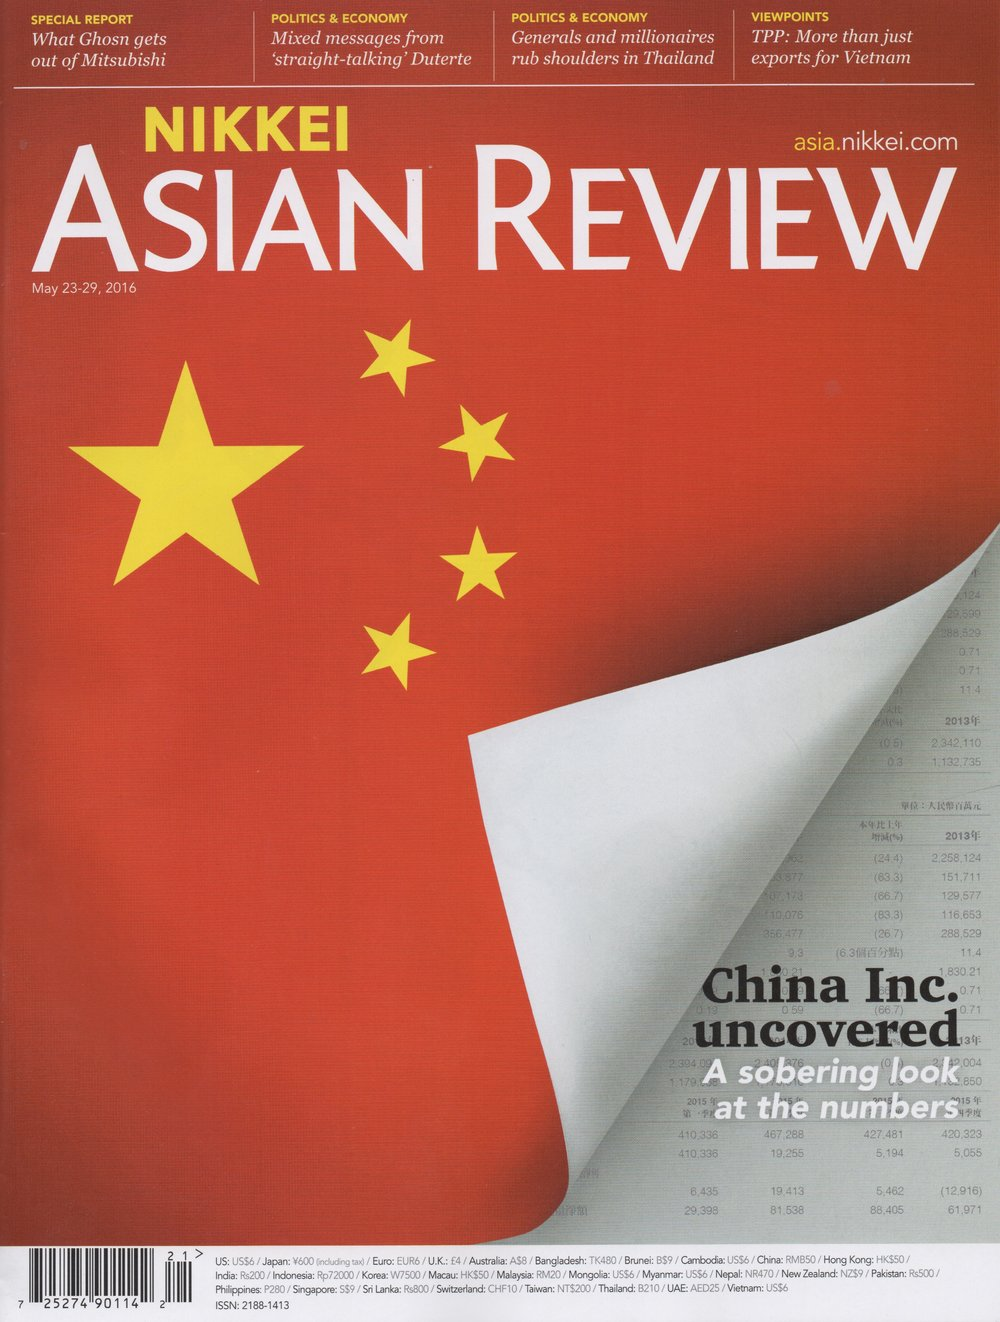 The Nikkei Asian Review